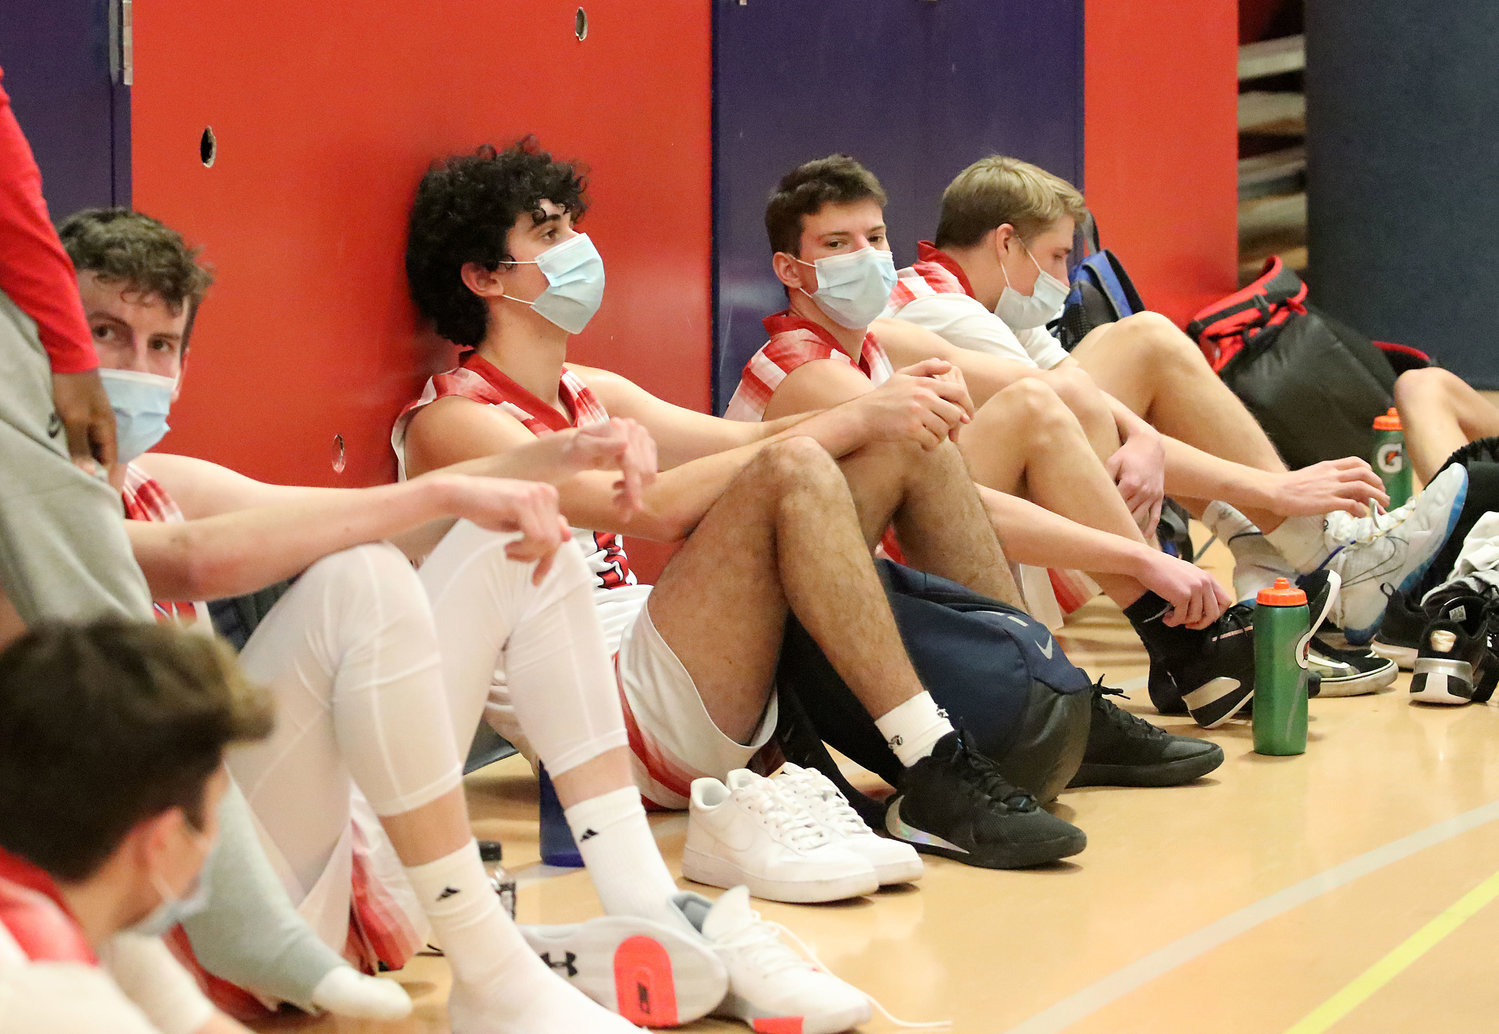 Members of the PHS boys' varsity basketball team rest after defeating Chariho on Saturday. Running up and down the court with a mask on is grueling, one player said.